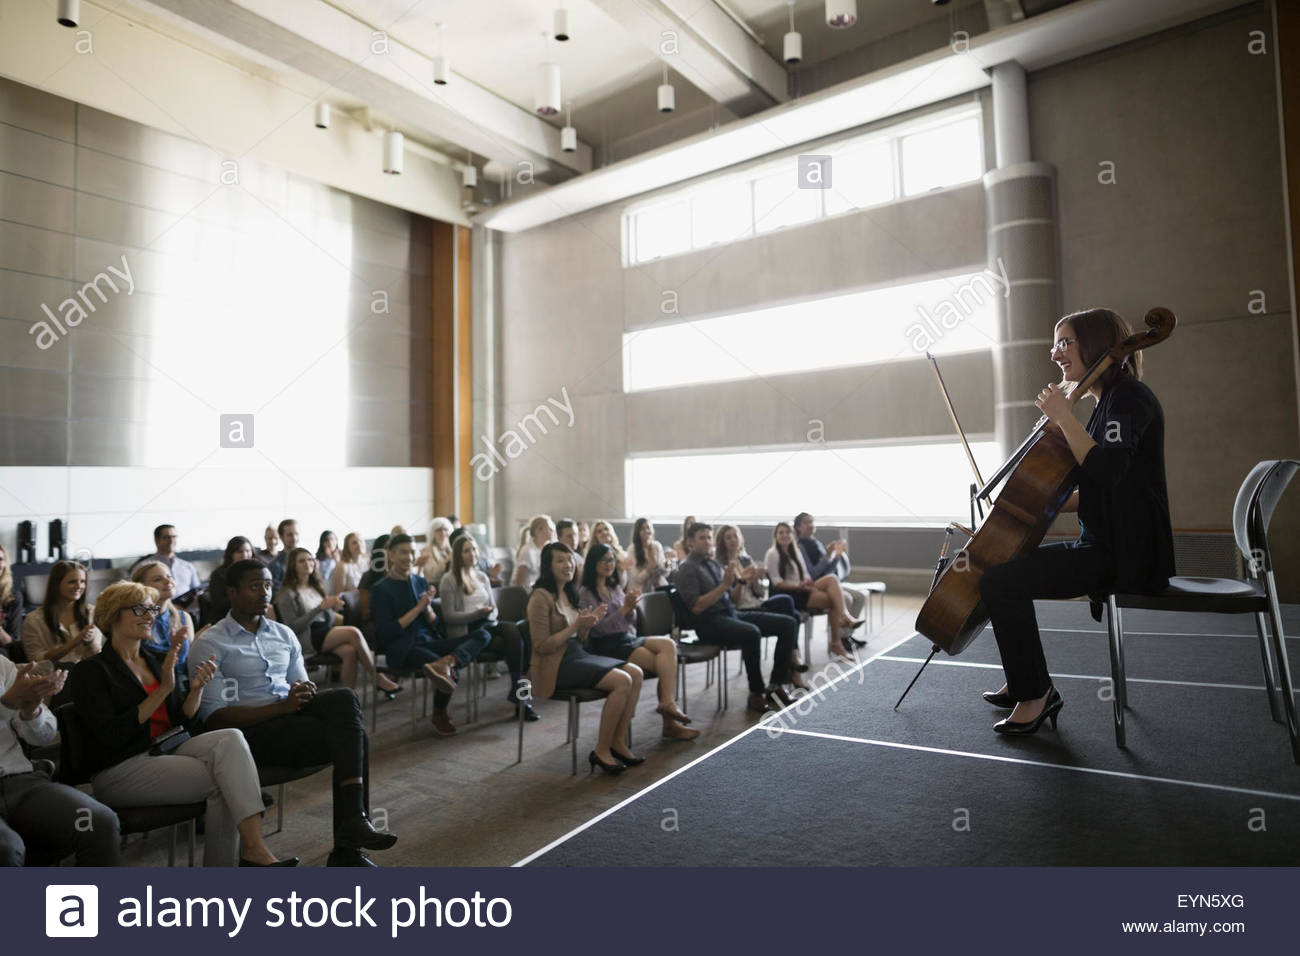 Audience watching female cellist perform on auditorium stage - Stock Image